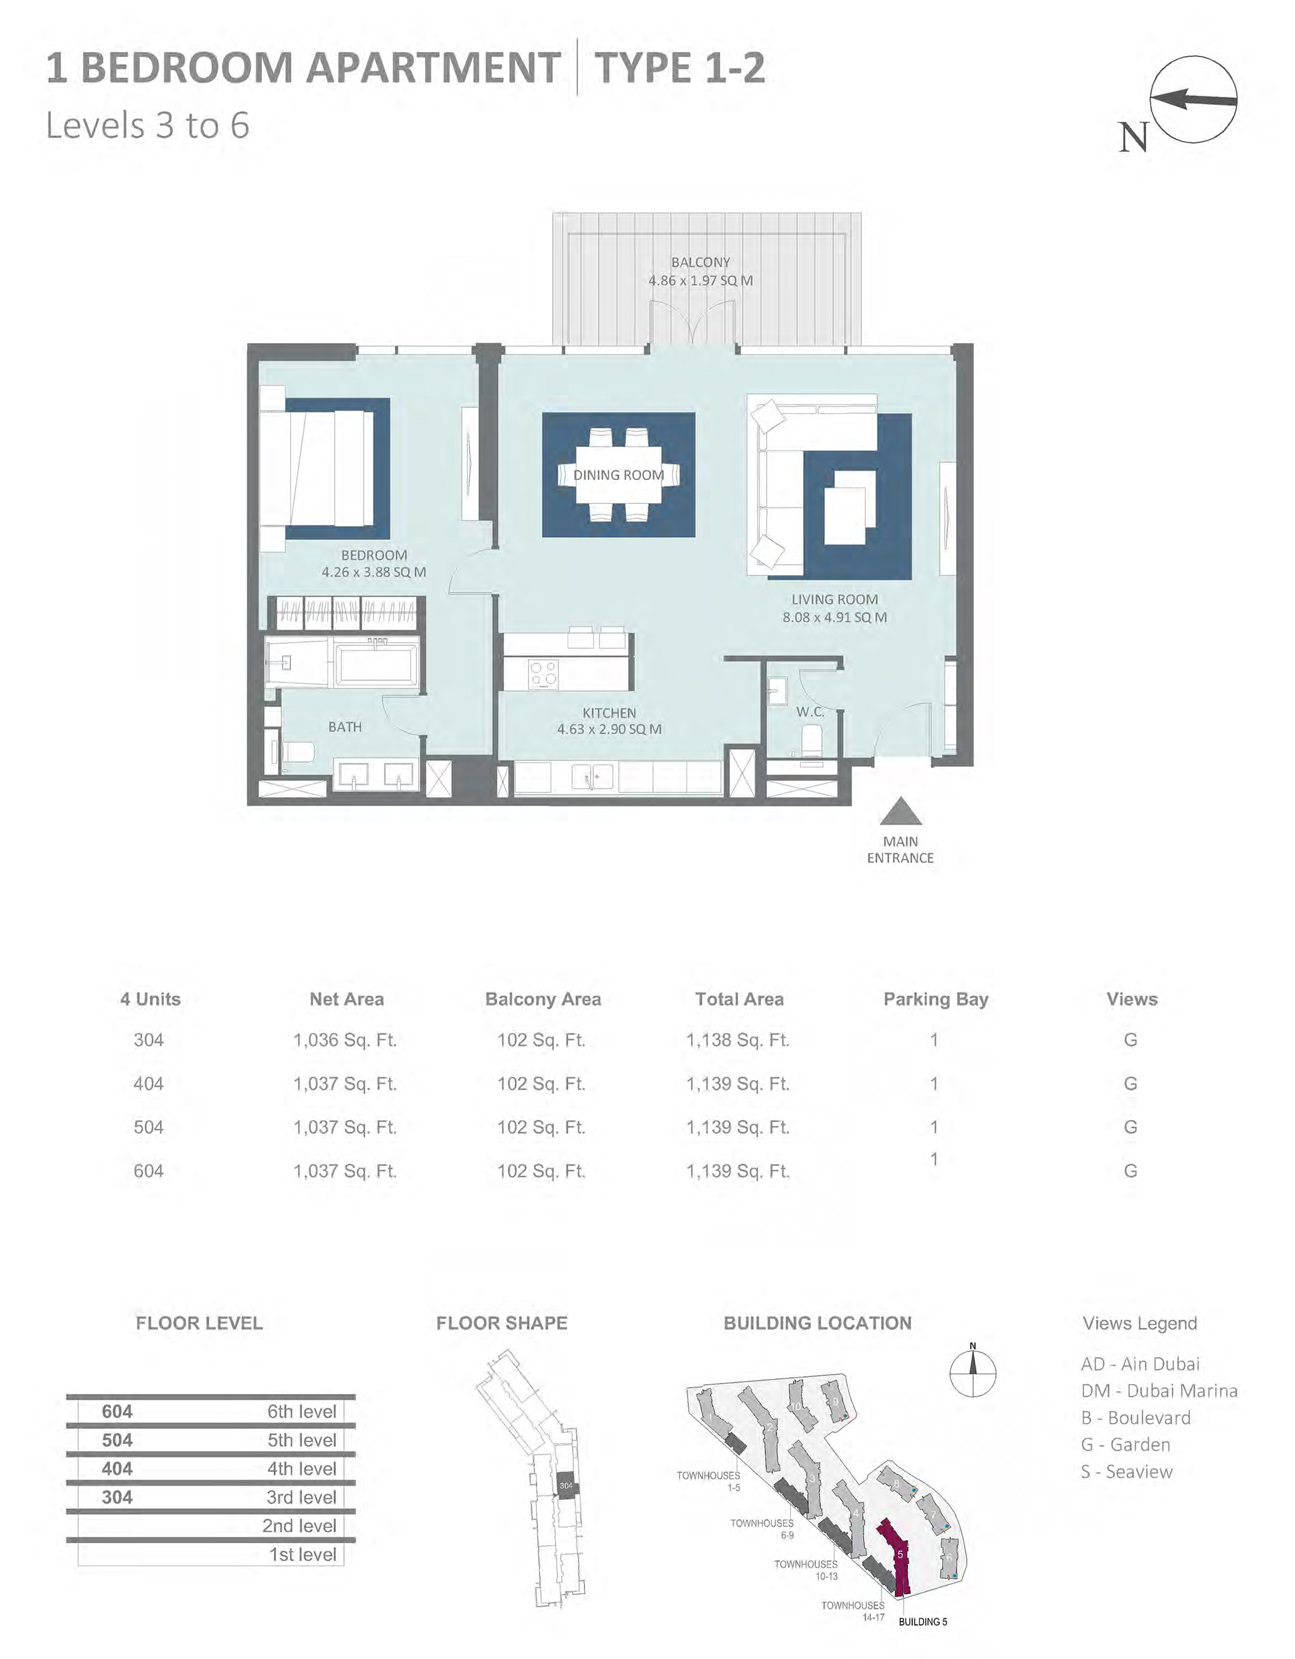 Building 5 - 1 Bedroom Type 1-2, Level 3 - 6 Size 1139  sq. ft.